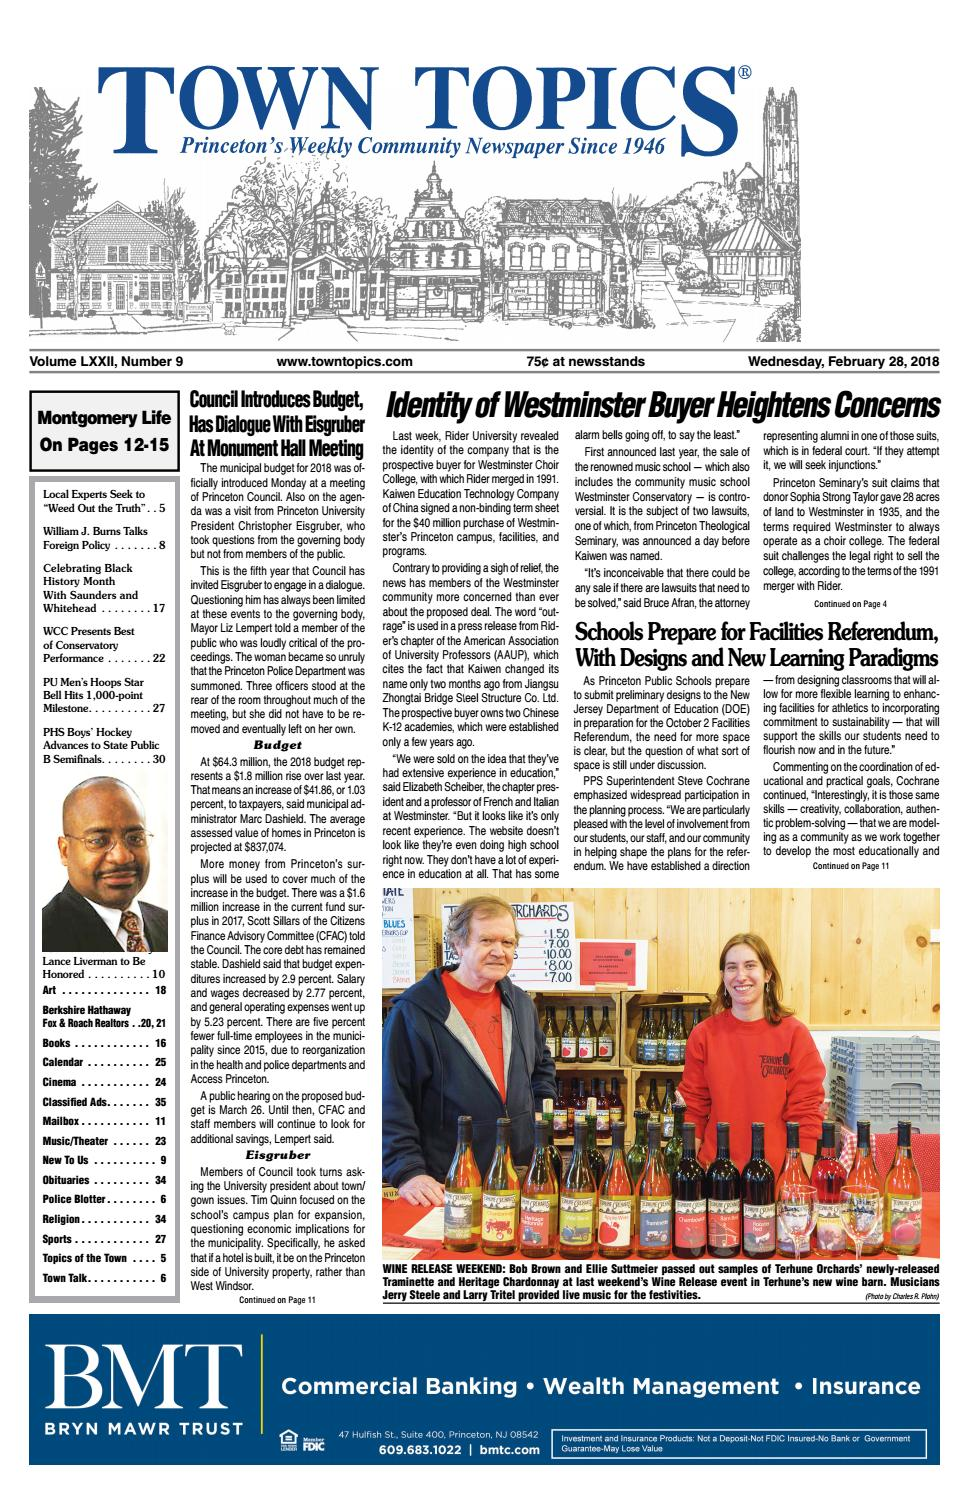 Town Topics Newspaper February 28, 2018 by Witherspoon Media